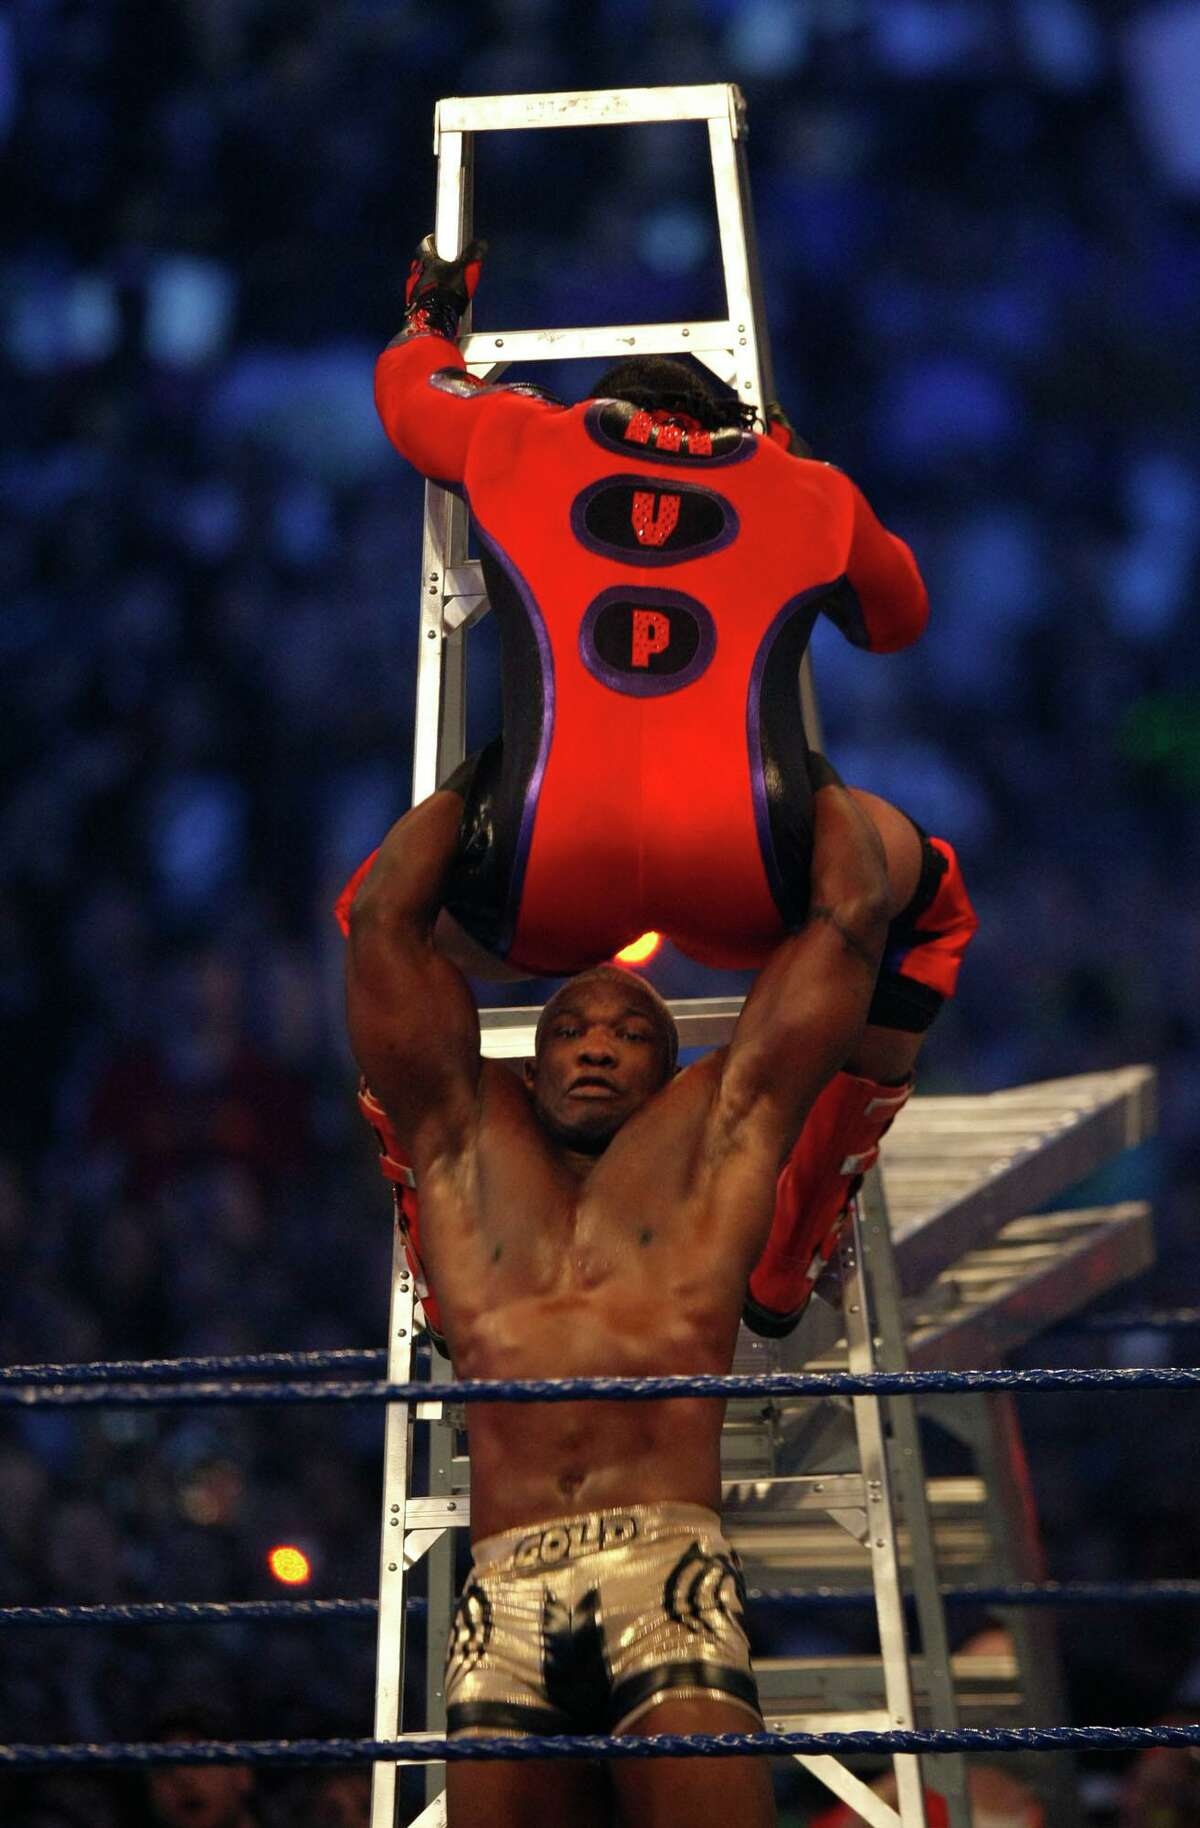 WWE wrestler Shelton Benjamin, also known as Gold Standard, bottom, brings down MVP during the Money in the Bank Ladder Match during the 25th anniversary of Wrestlemania held at Reliant Stadium on Sunday, April 5, 2009, in Houston. For the 2020 Money in the Bank, WWE shot the ladder matches at its headquarters in Stamford, Conn.